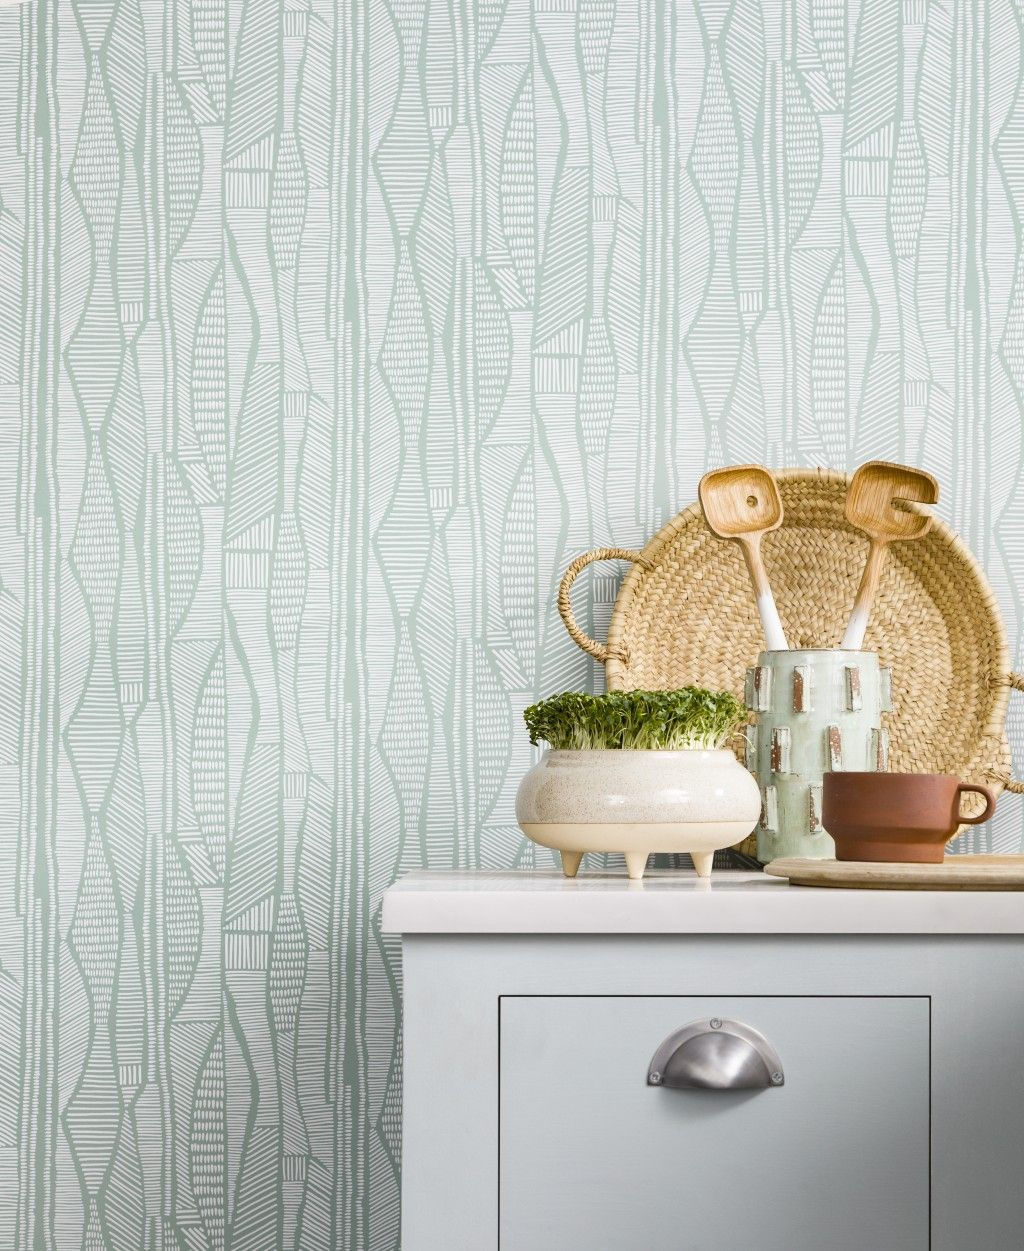 Mid-Century Kitchen Wallpaper